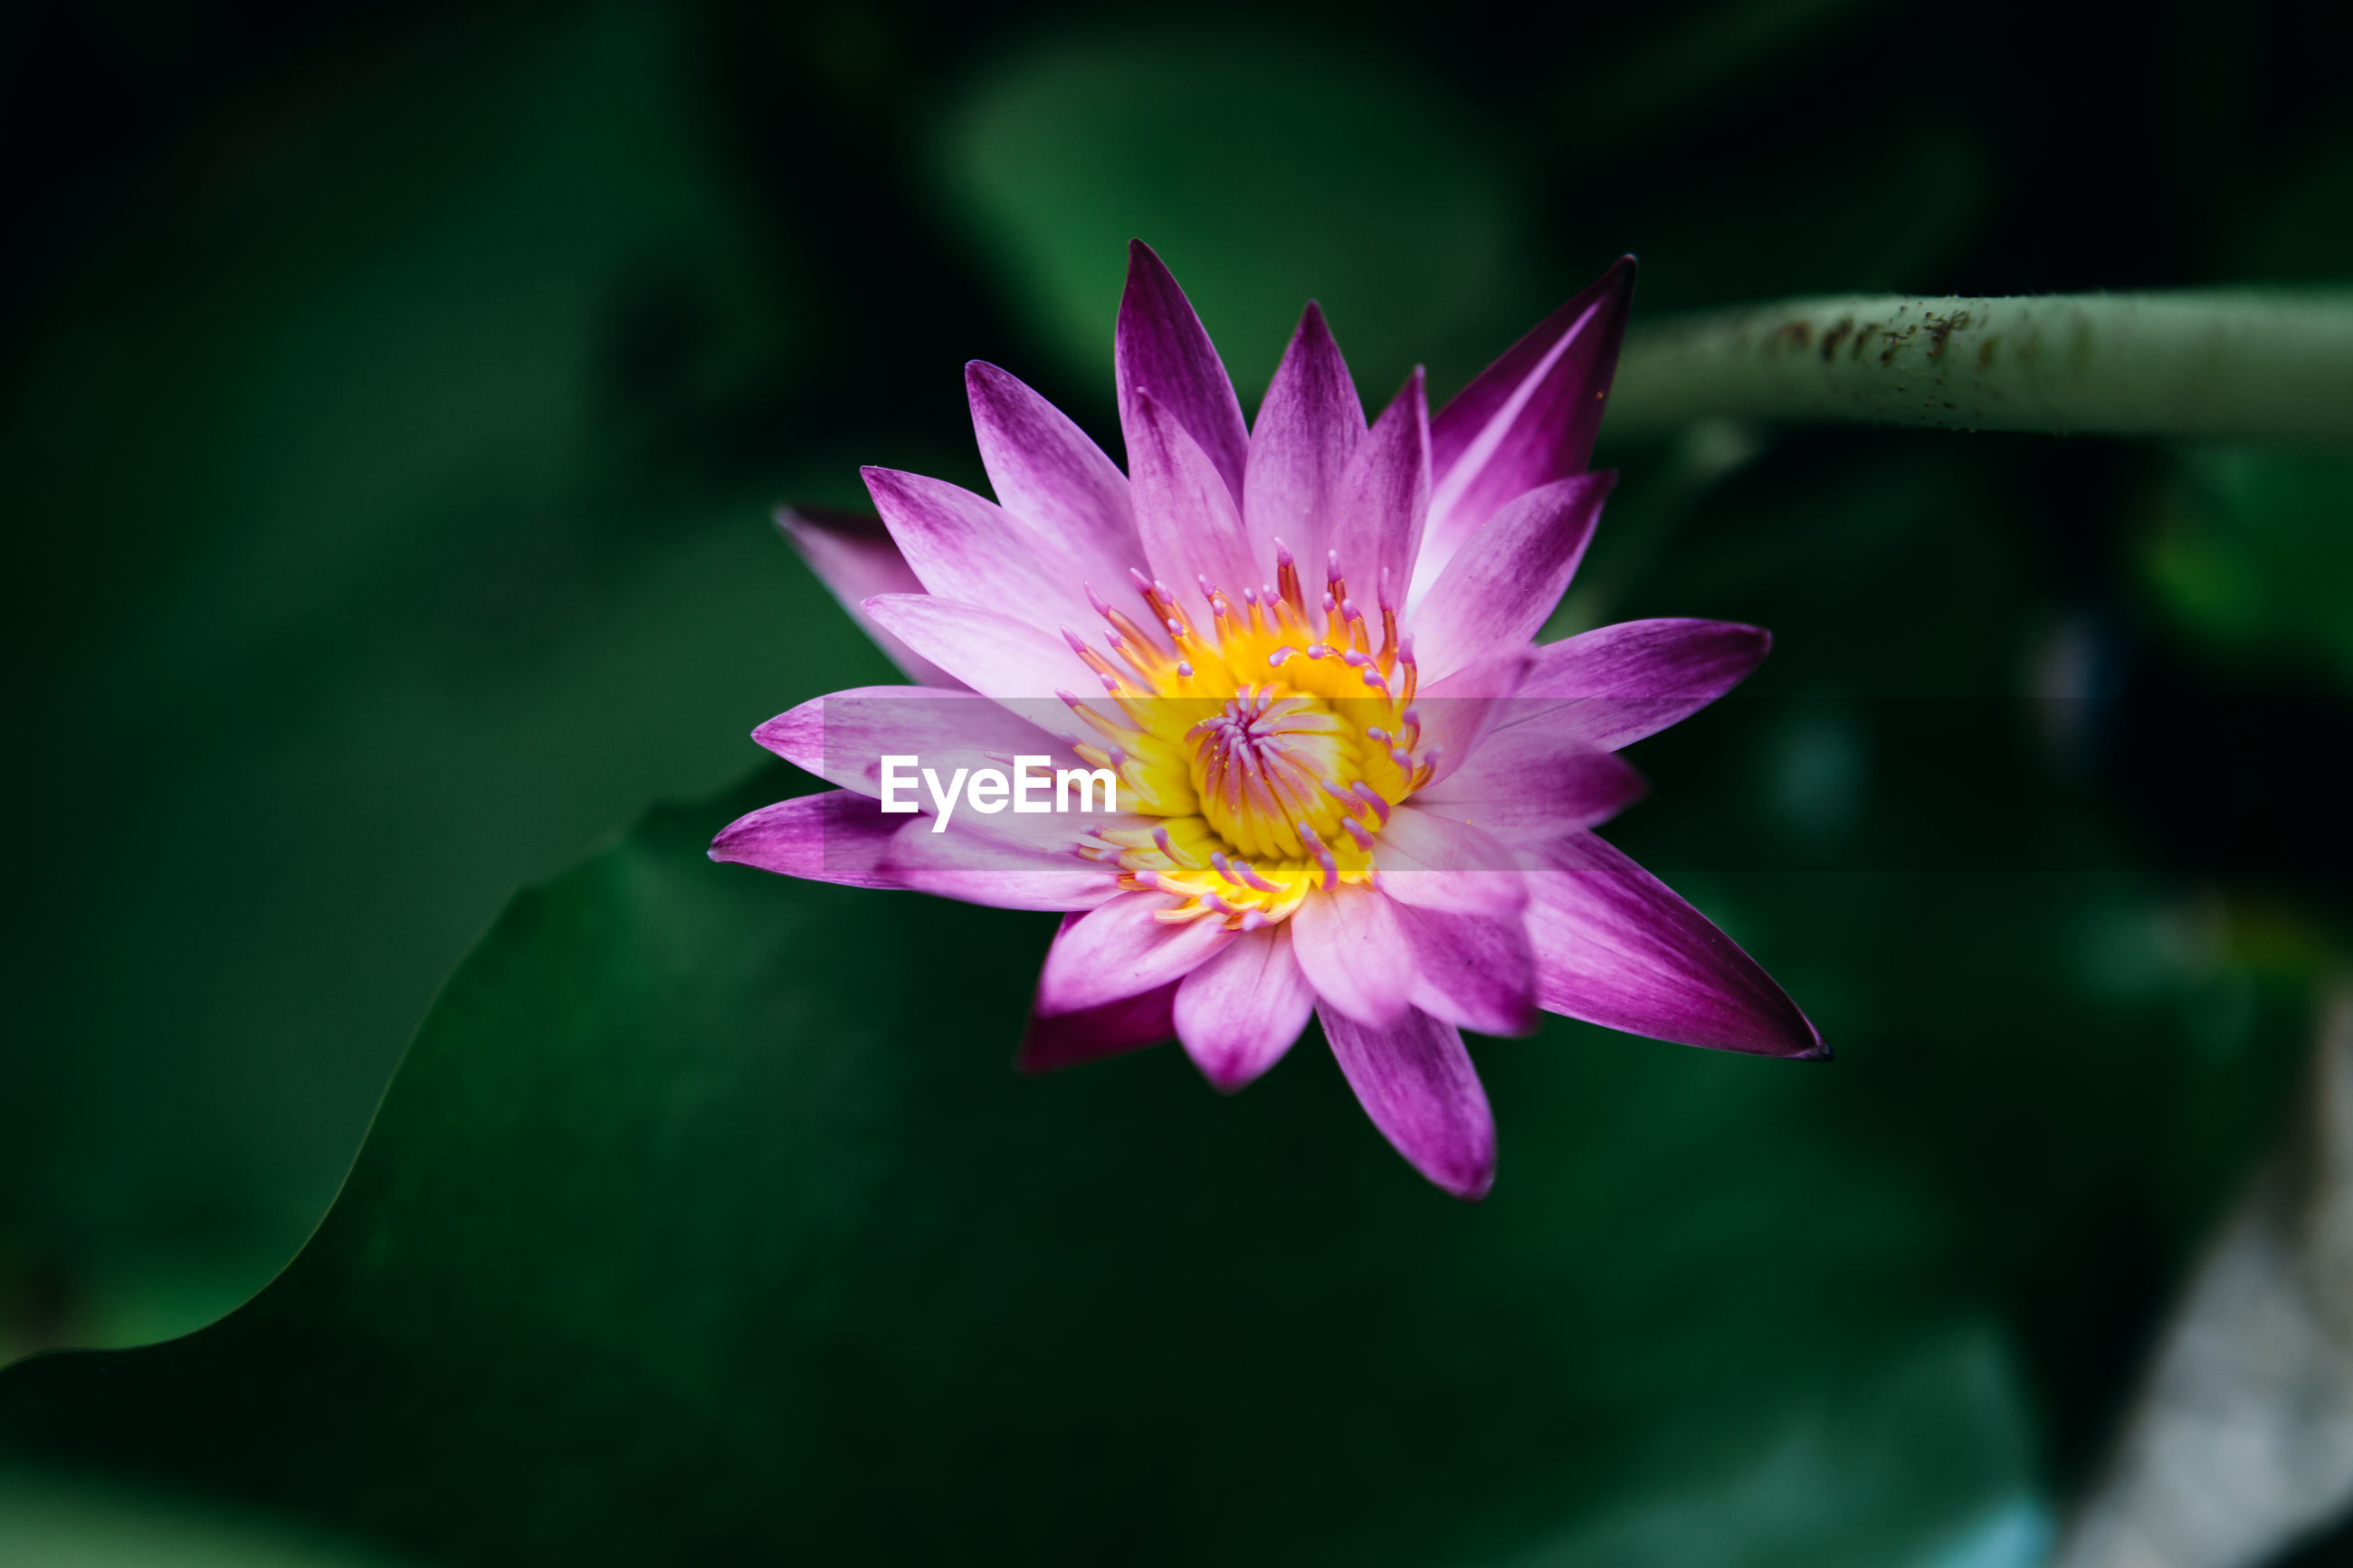 CLOSE-UP OF PURPLE WATER LILY IN GARDEN